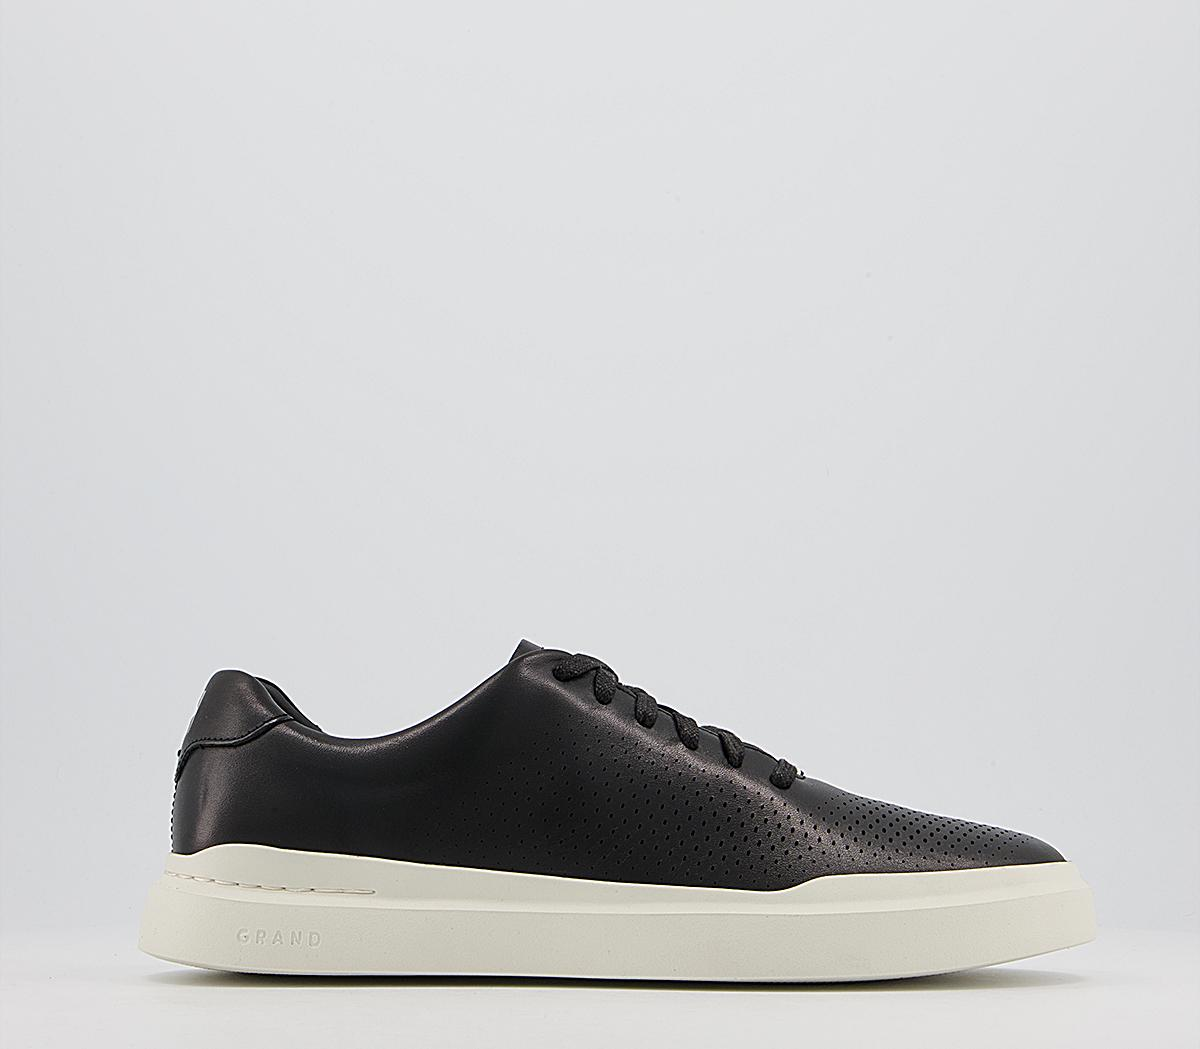 Grand Pro Rally Court Sneakers